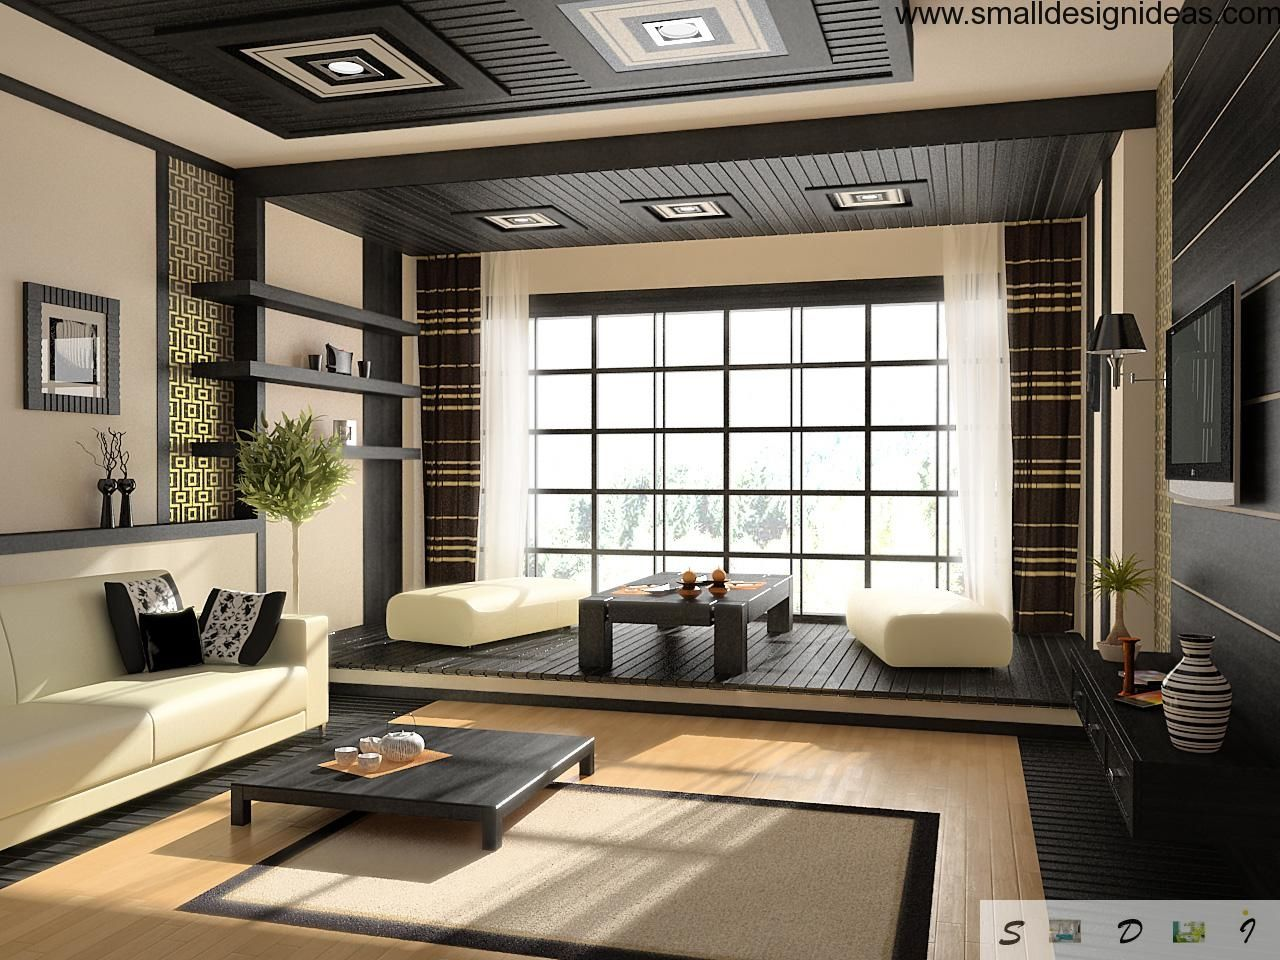 Japanese Houses Interior 10 things to know before remodeling your interior into japanese